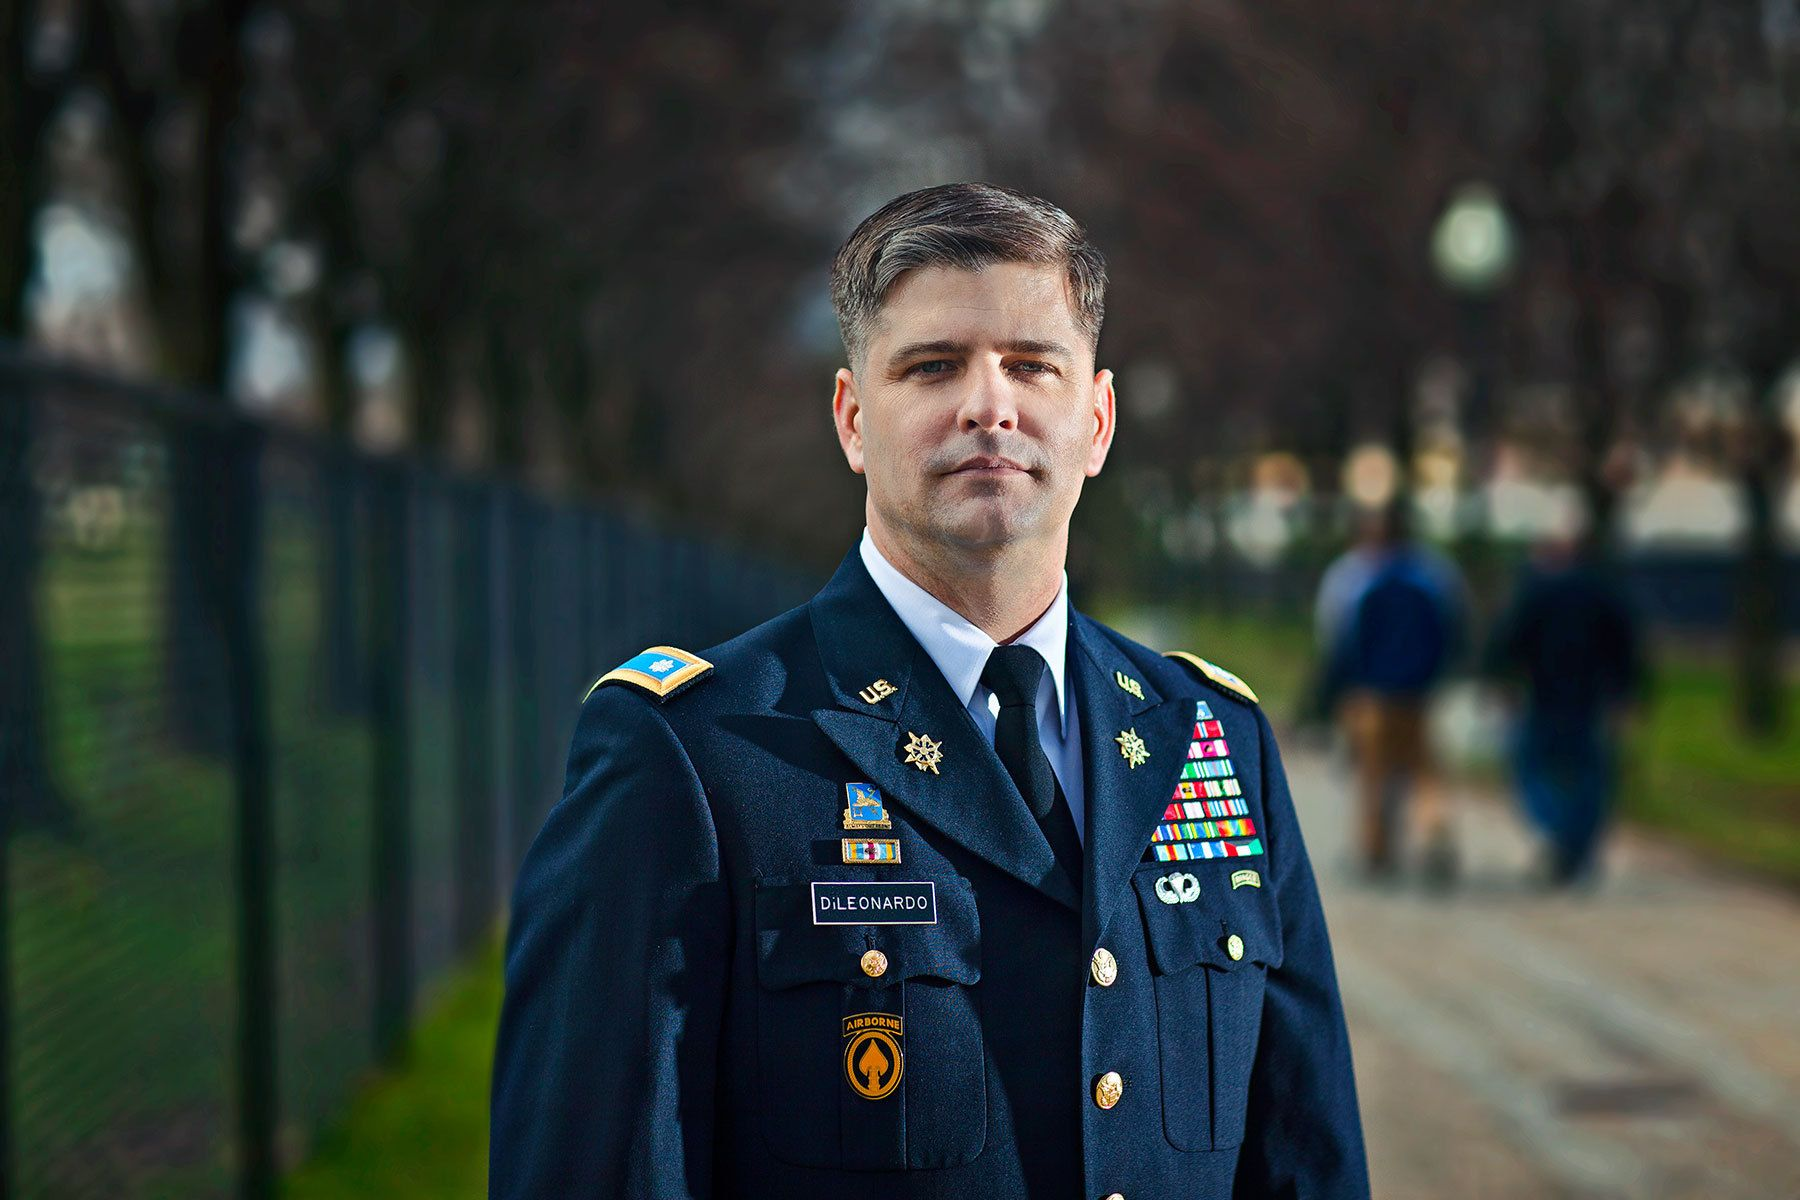 US Army Lt. Colonel Al Di Leonardo near the Lincoln Memorial-  Washington, DC